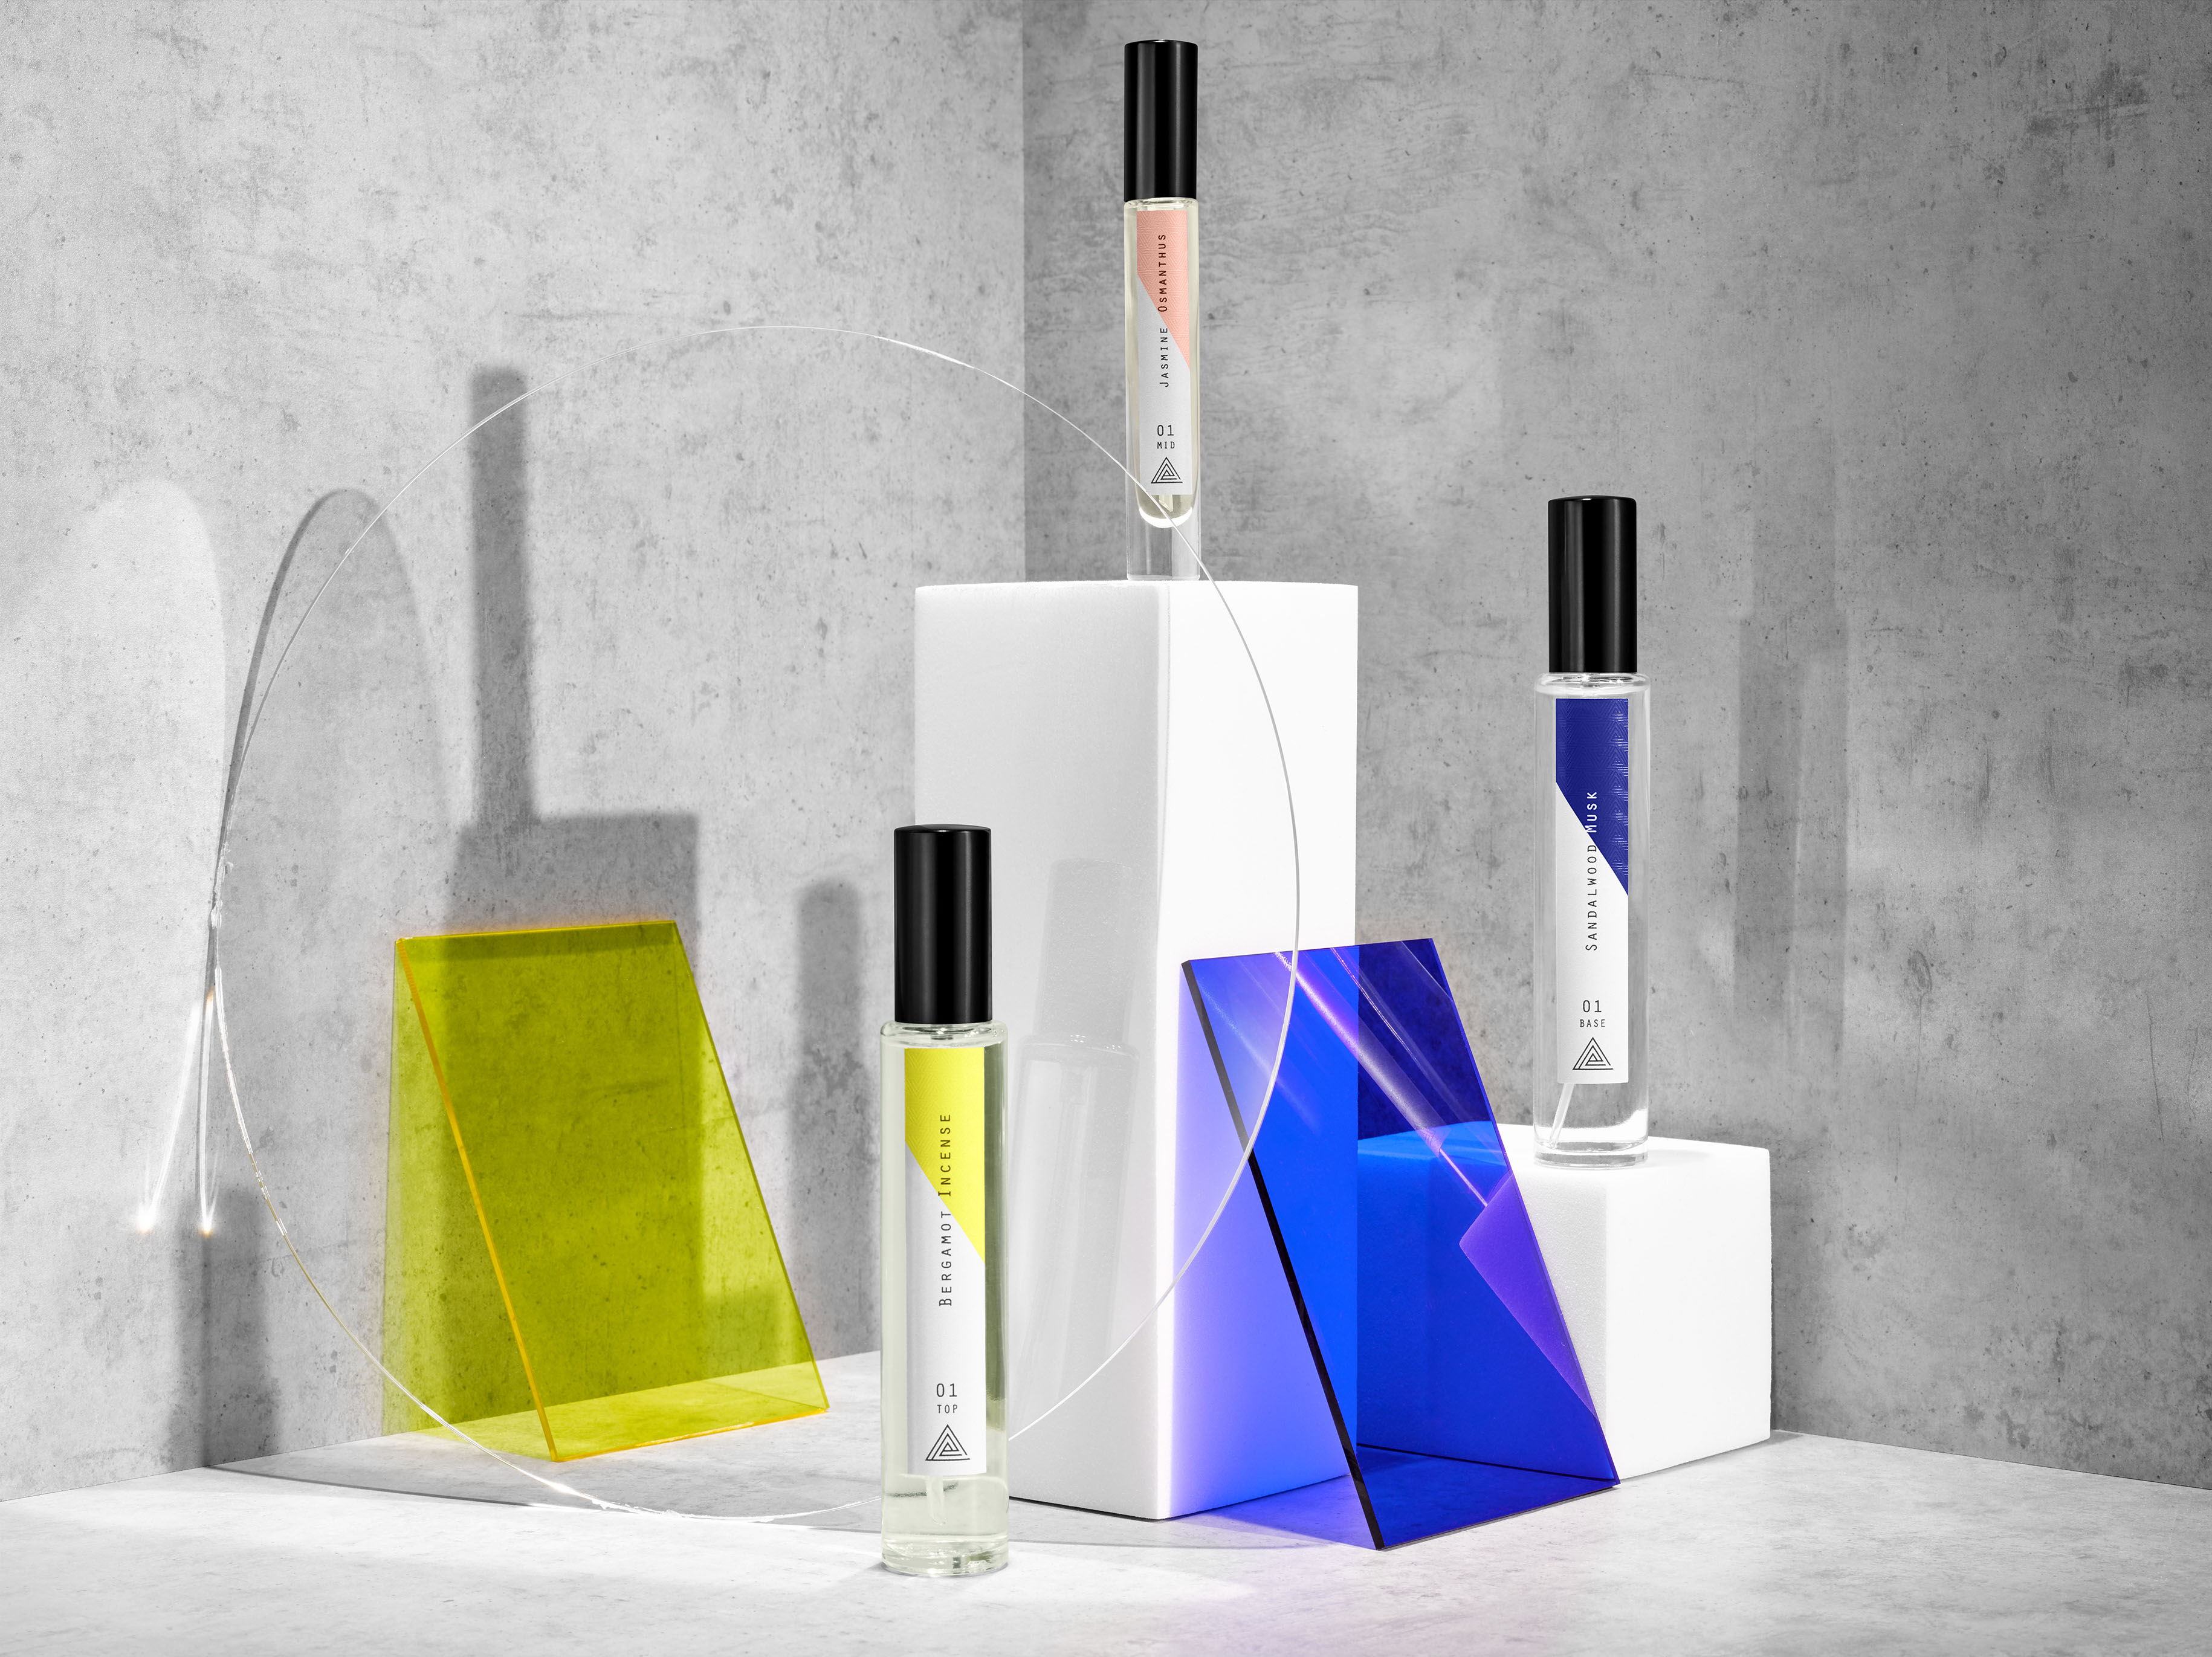 Layers by Experimental Perfume Club